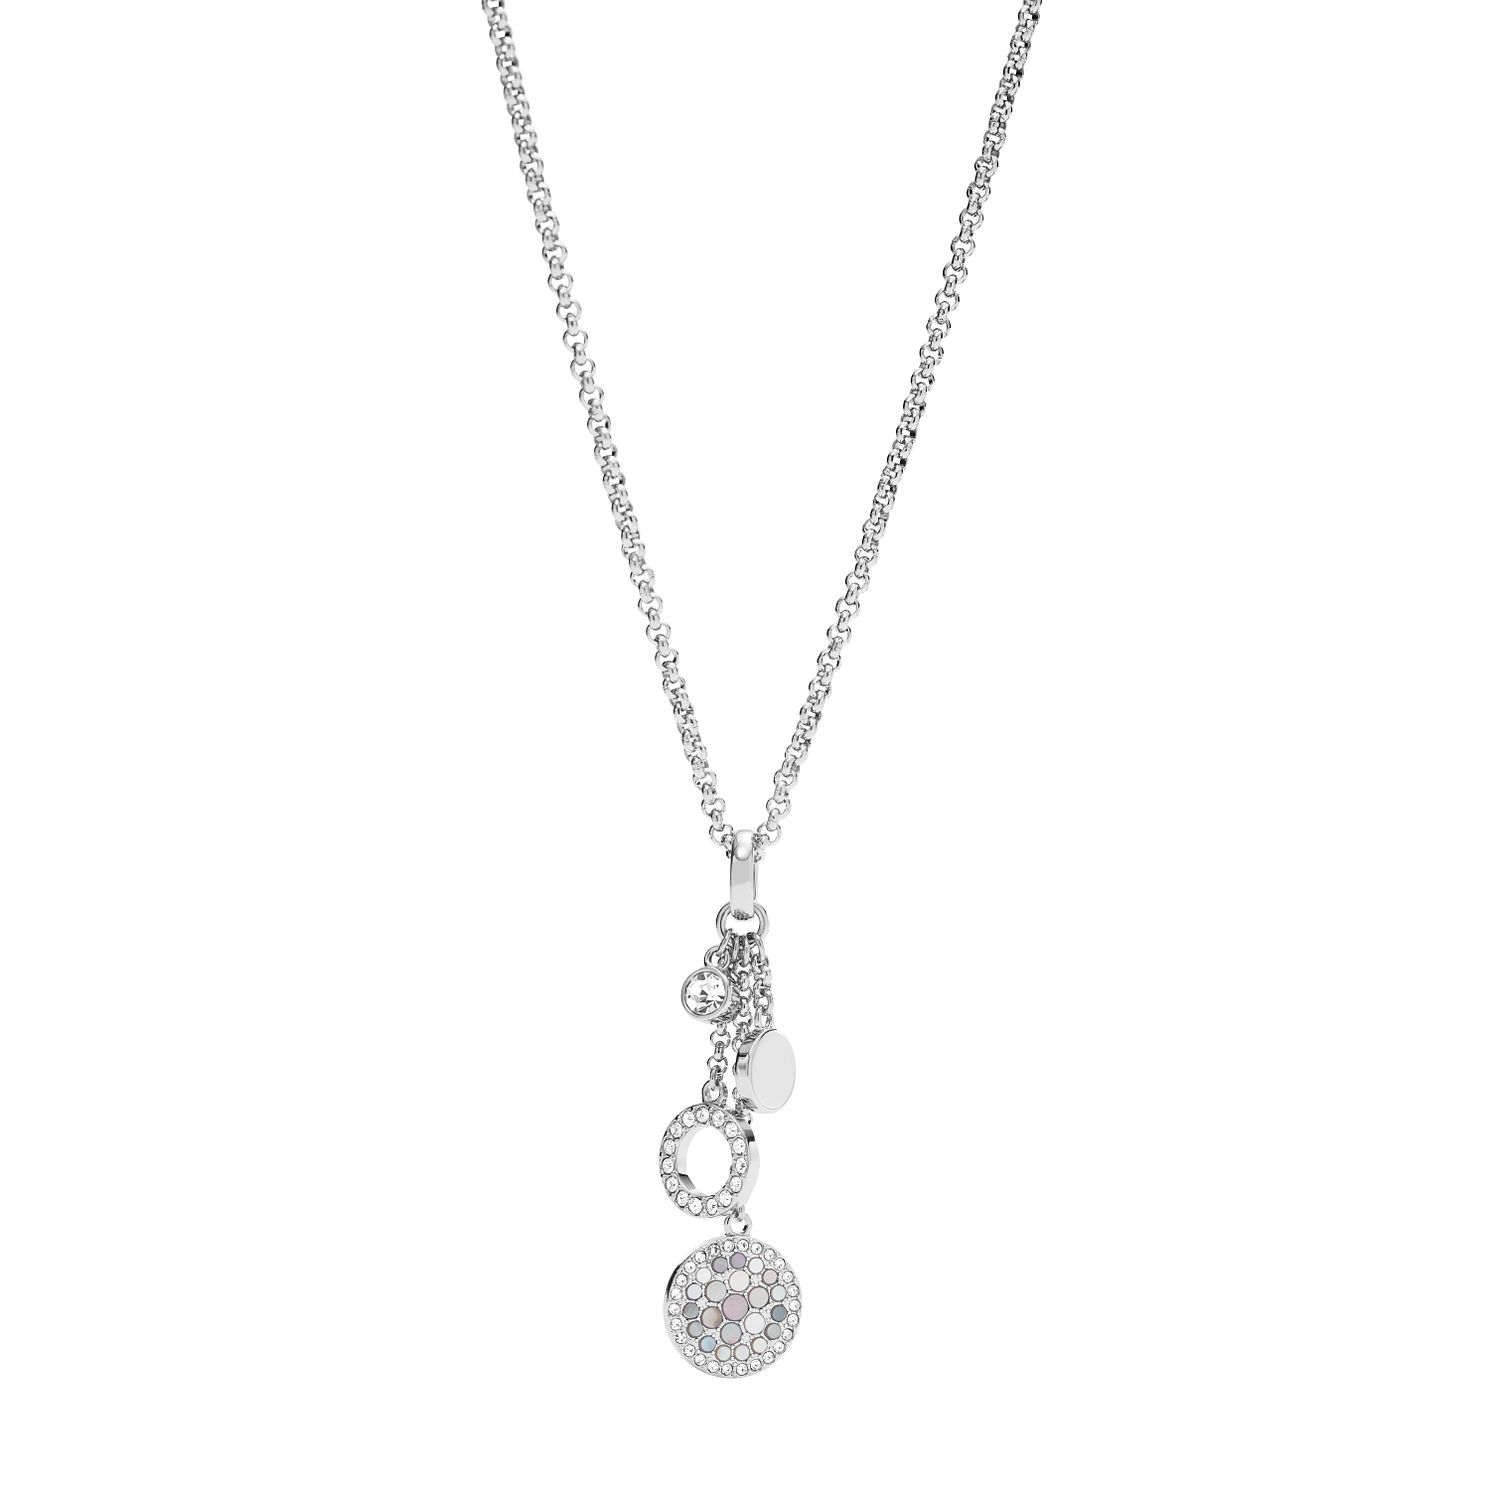 Fossil Ladies' Stainless Steel Stone Set Disc Necklace - Product number 8817294